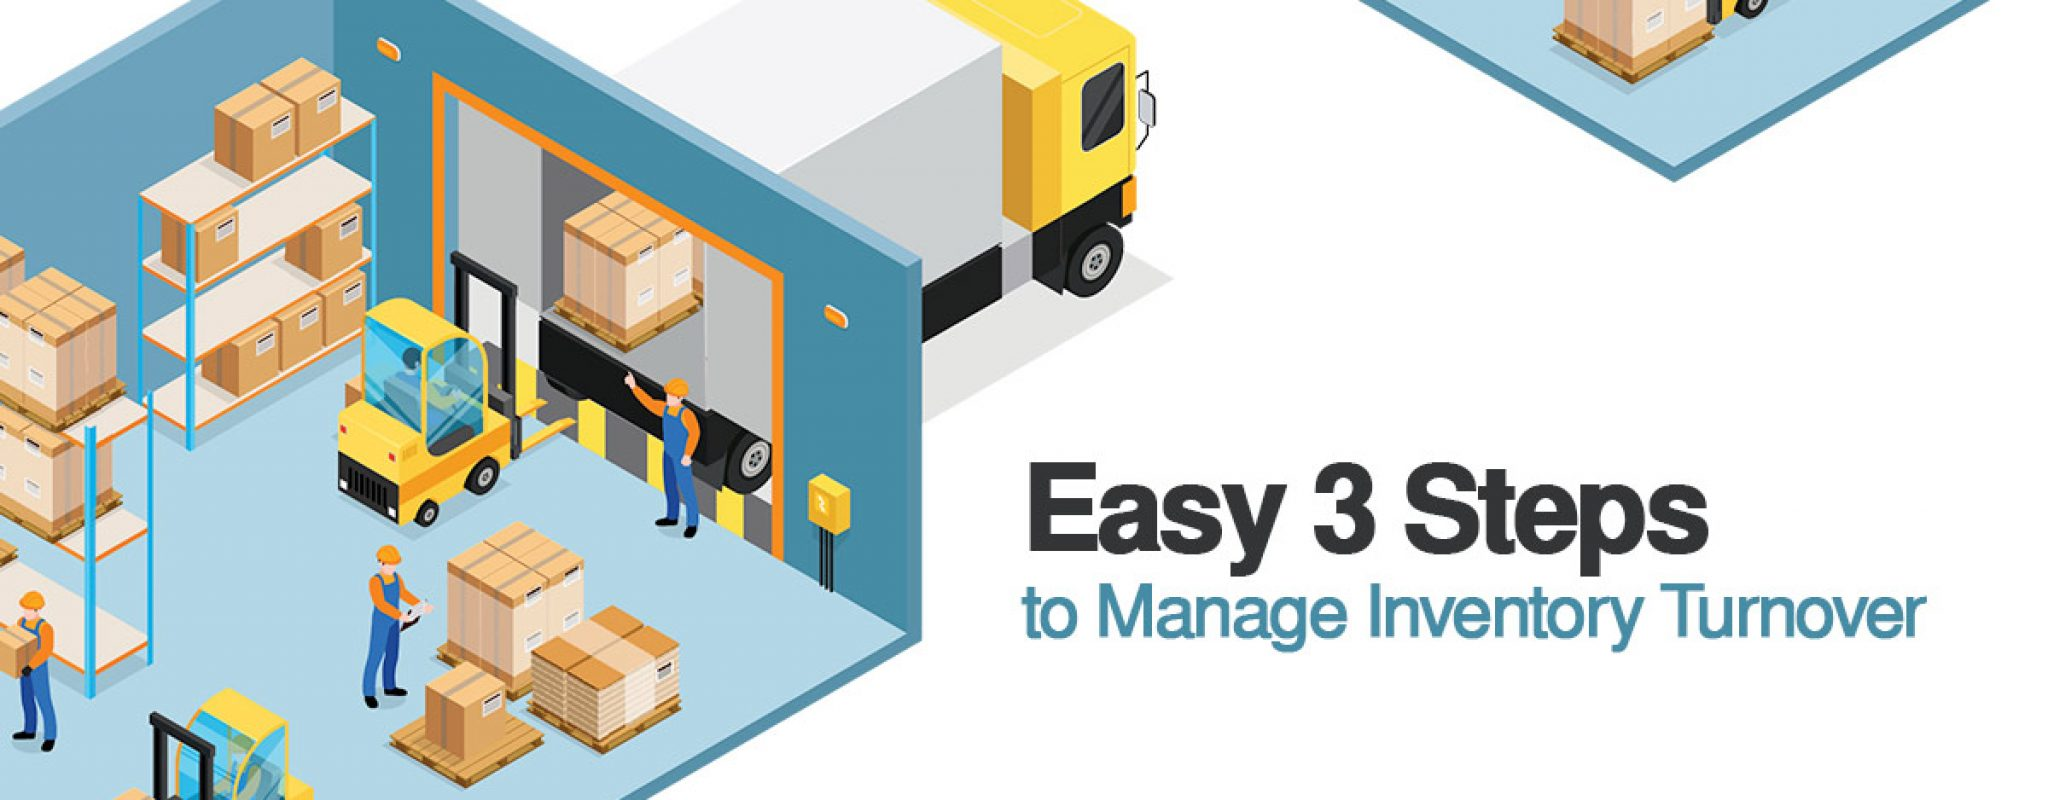 Easy 3 steps to manager your inventory turnover